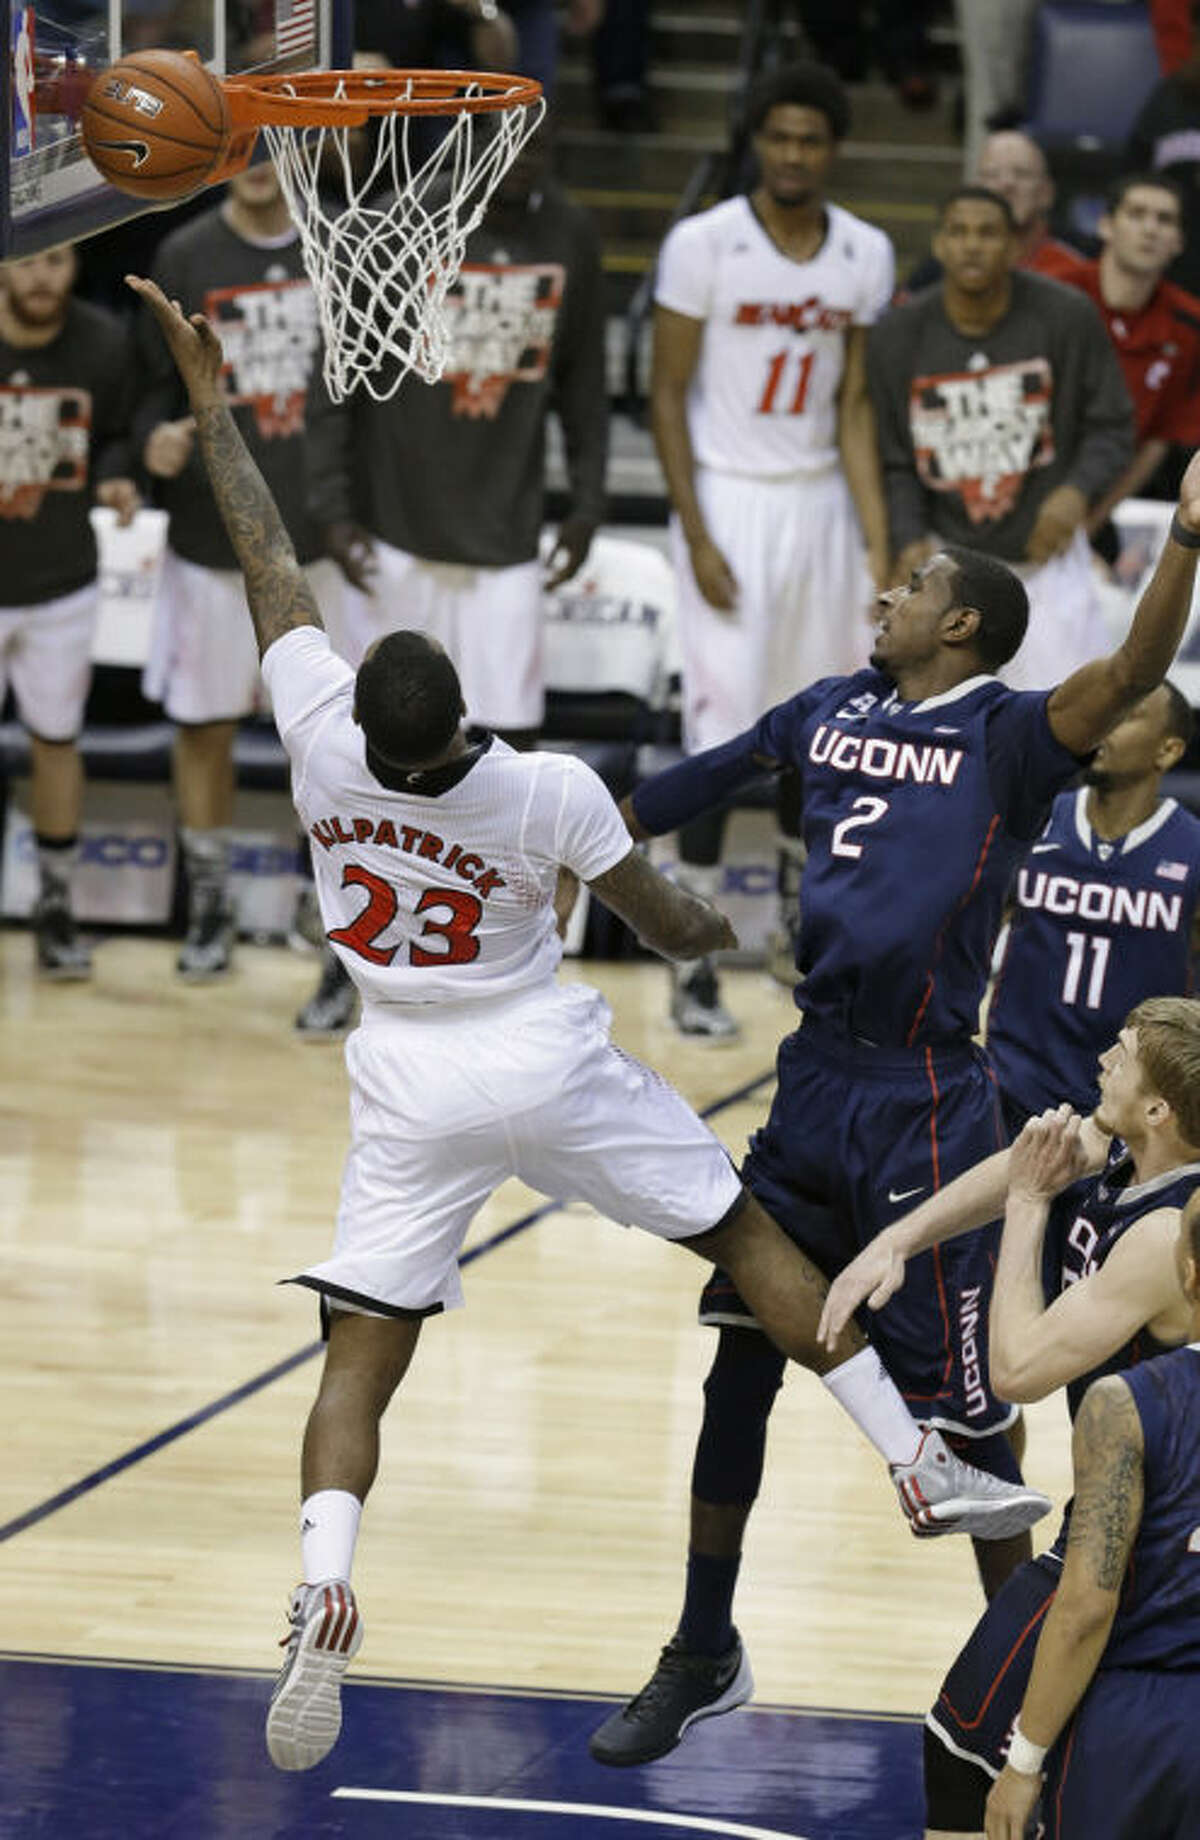 Cincinnati guard Sean Kilpatrick (23) misses a layup as Connecticut forward DeAndre Daniels (2) defends on the final shot of an NCAA college basketball game in the semifinals of the American Athletic Conference men's tournament Friday, March 14, 2014, in Memphis, Tenn. Connecticut won 58-56. (AP Photo/Mark Humphrey)